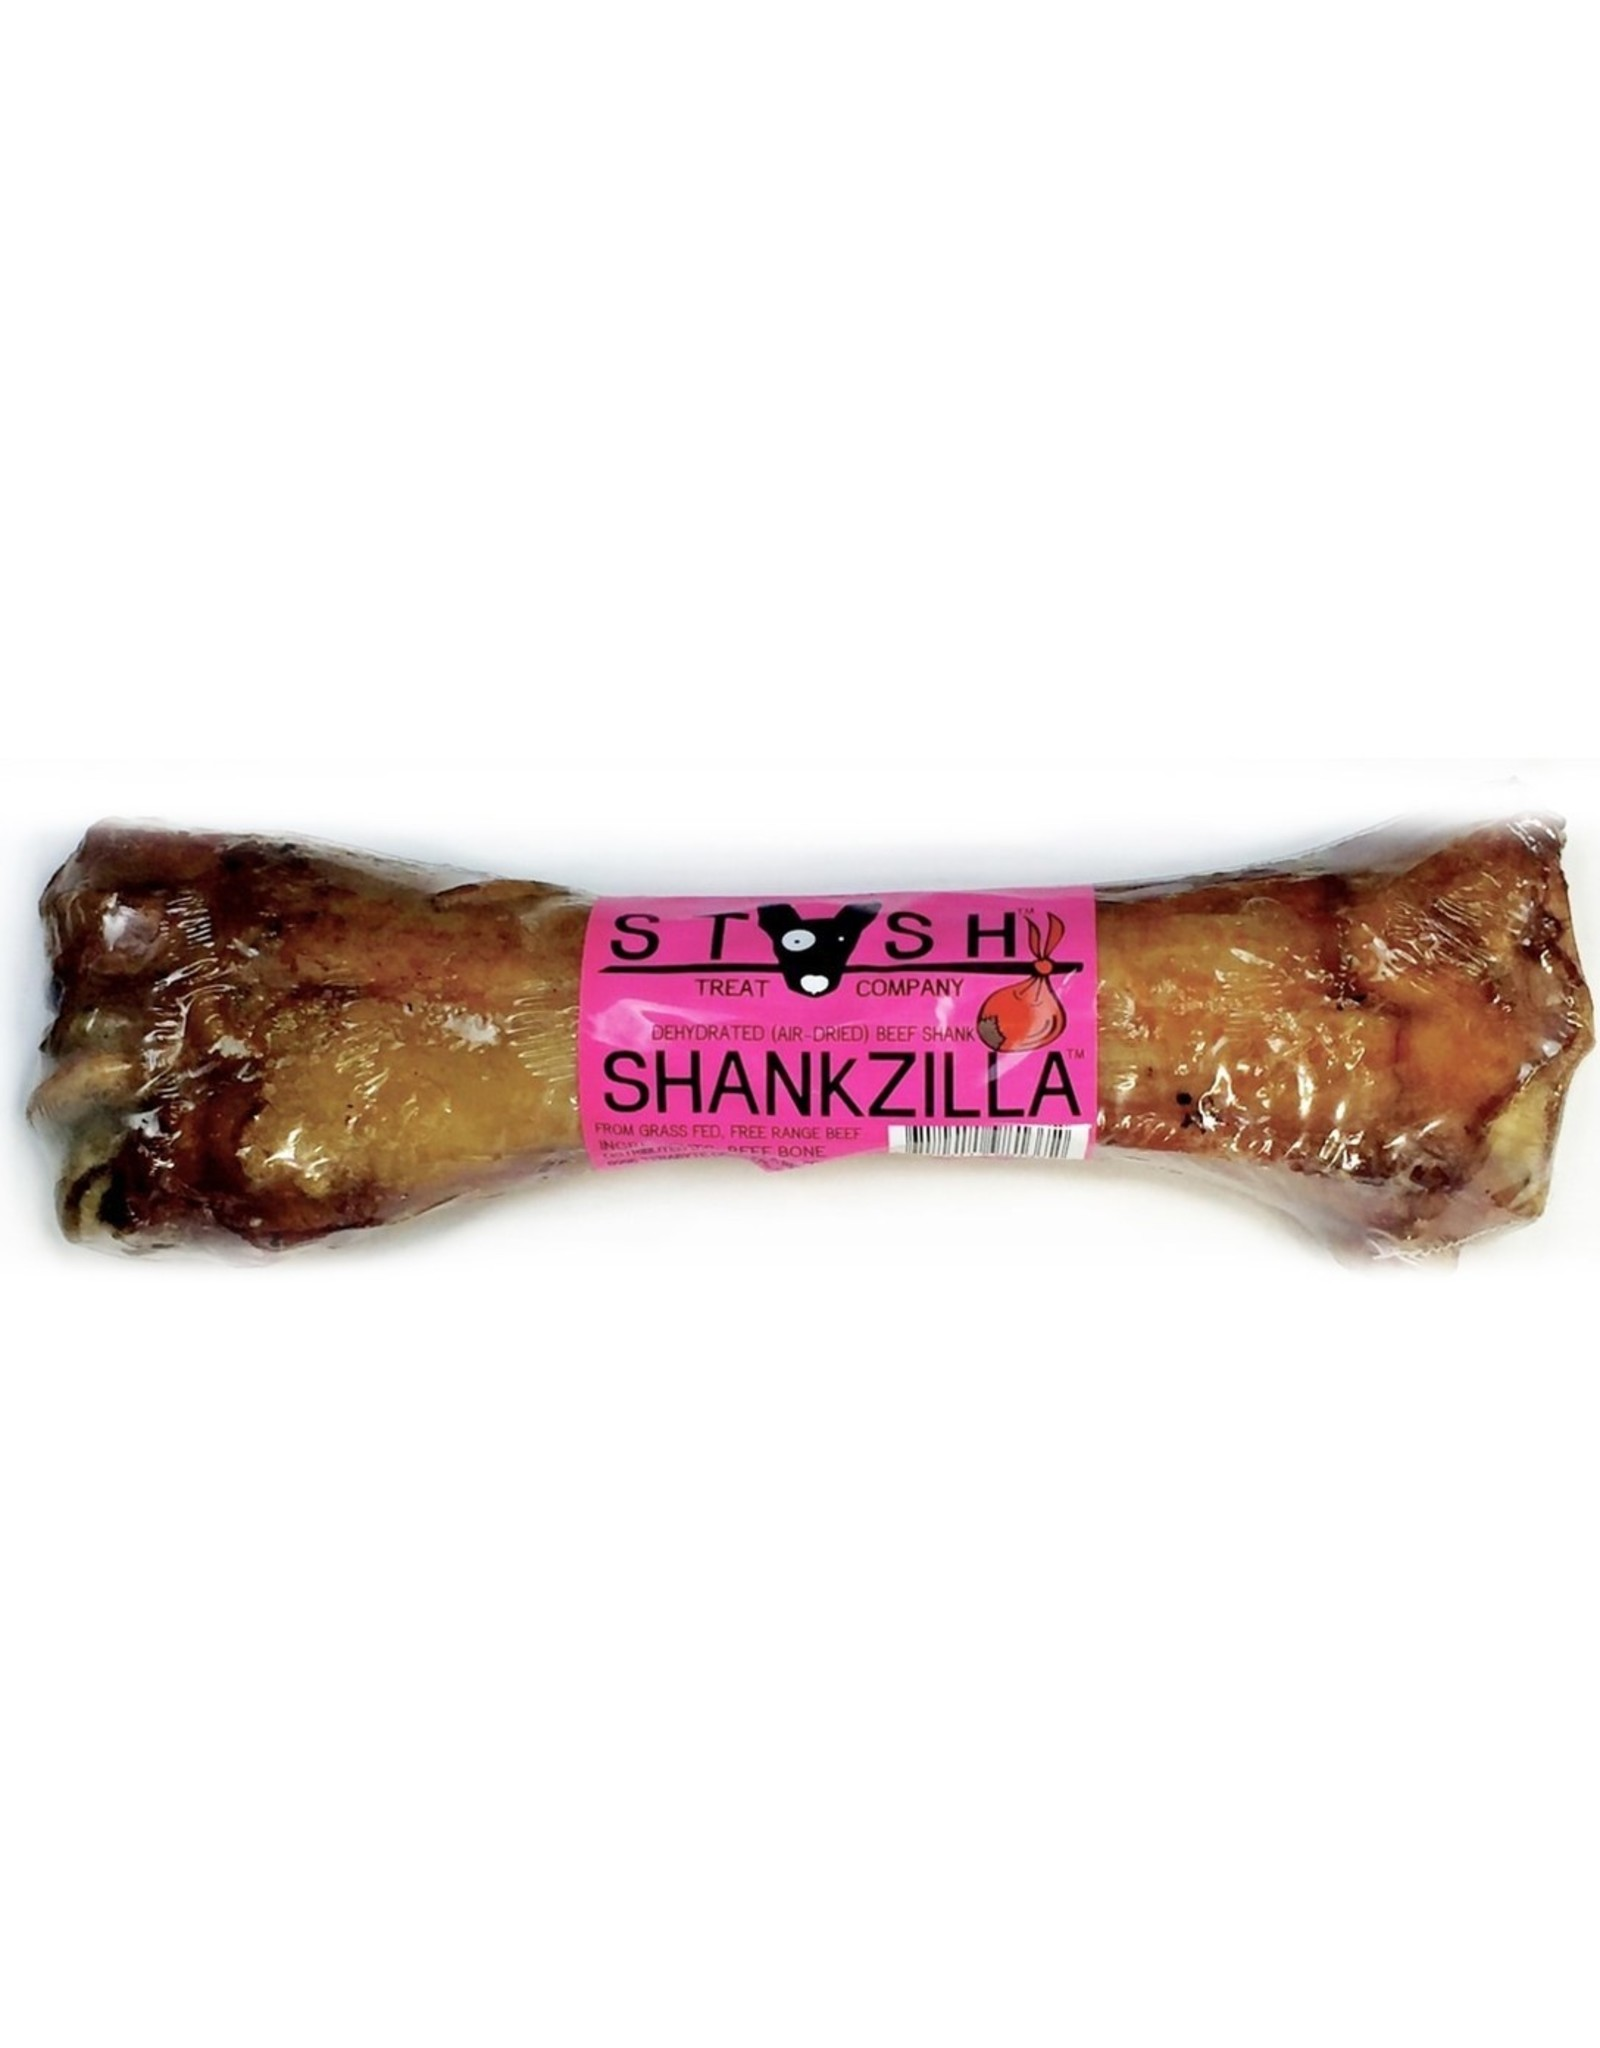 Stash Treat Company STASH SHANKZILLA NATURAL DEHYDRATED BEEF SHANK